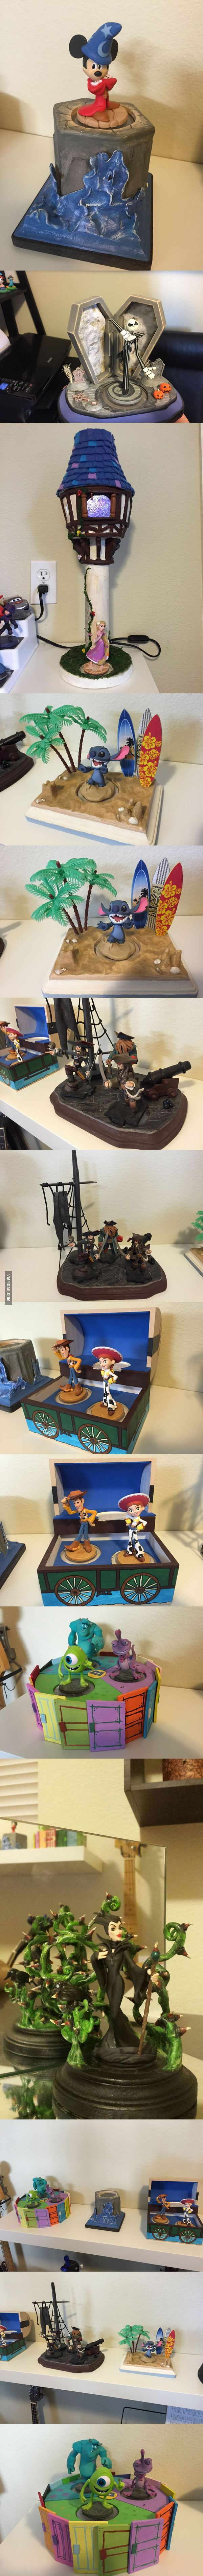 My buddy makes displays for all his Disney Infinity. Had to share with the world